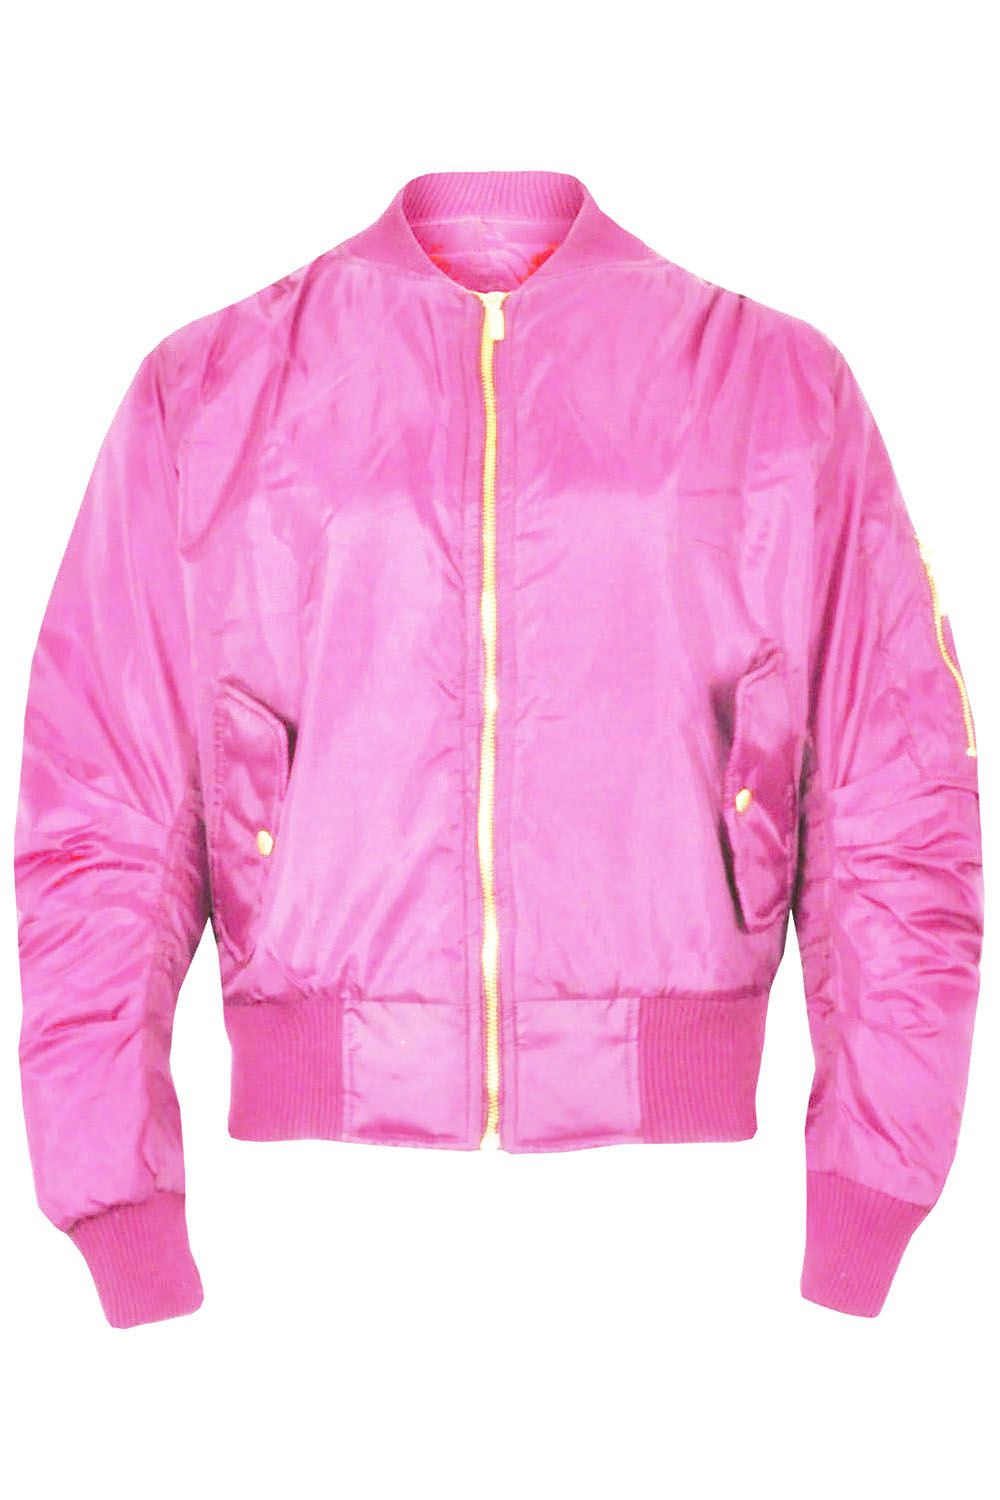 Find great deals on eBay for kids jackets girls. Shop with confidence.